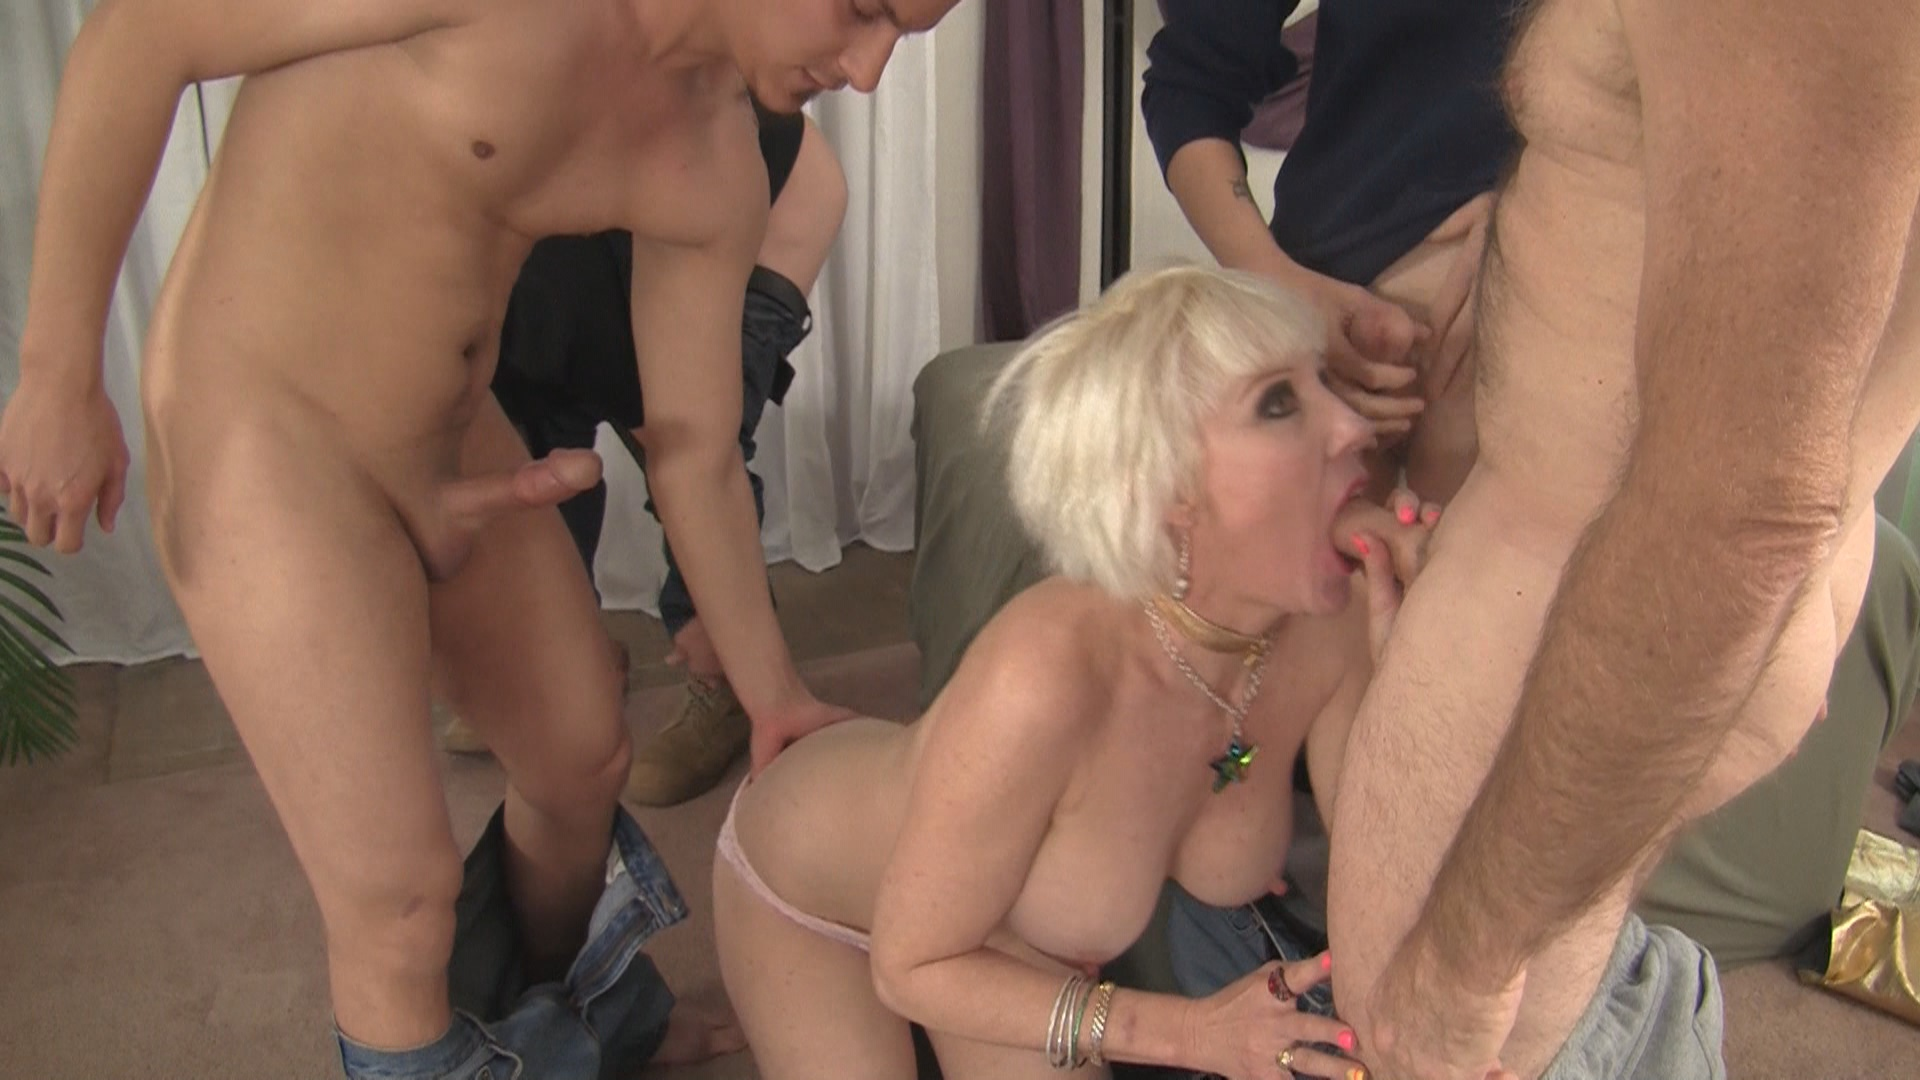 My Favorite Over 50 Gang Bang 2 Xvideos183982